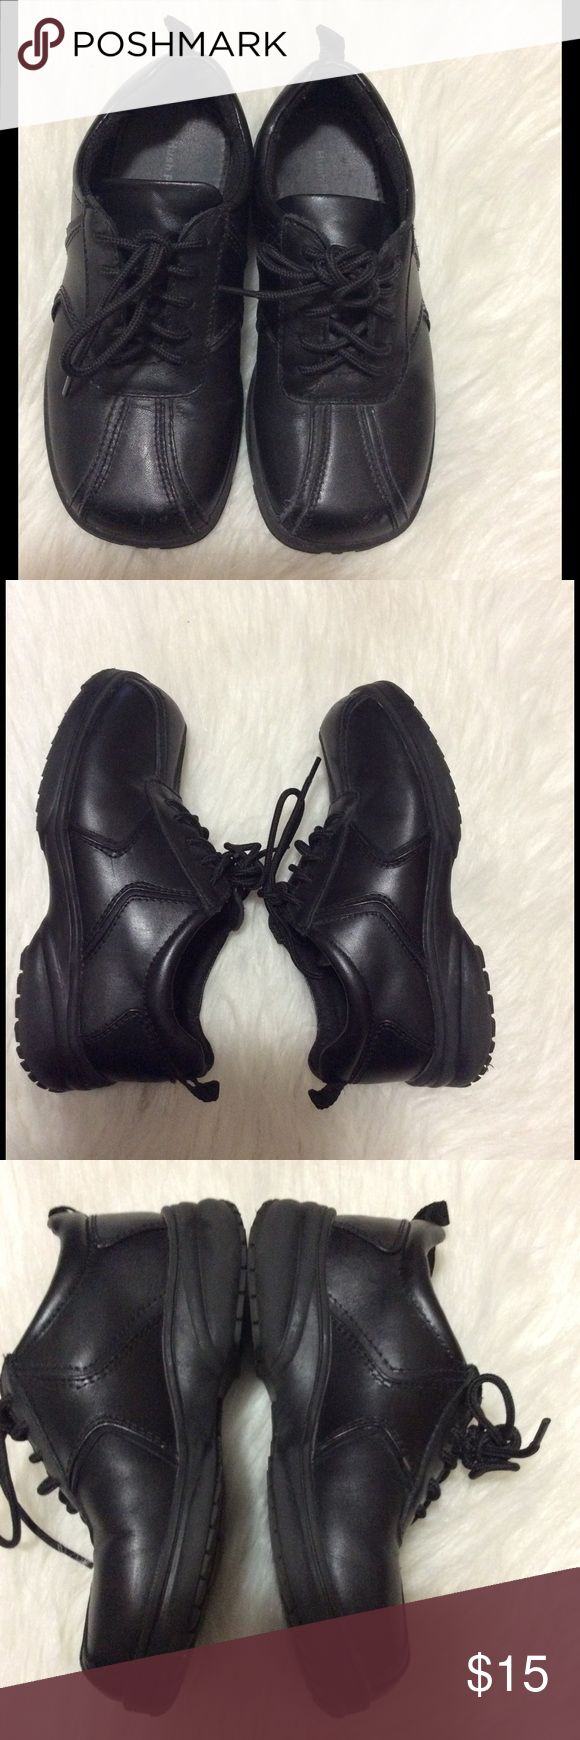 Boys dress shoes Preowned condition with minor wear. Black dress shoes from Hush puppies Hush Puppies Shoes Dress Shoes